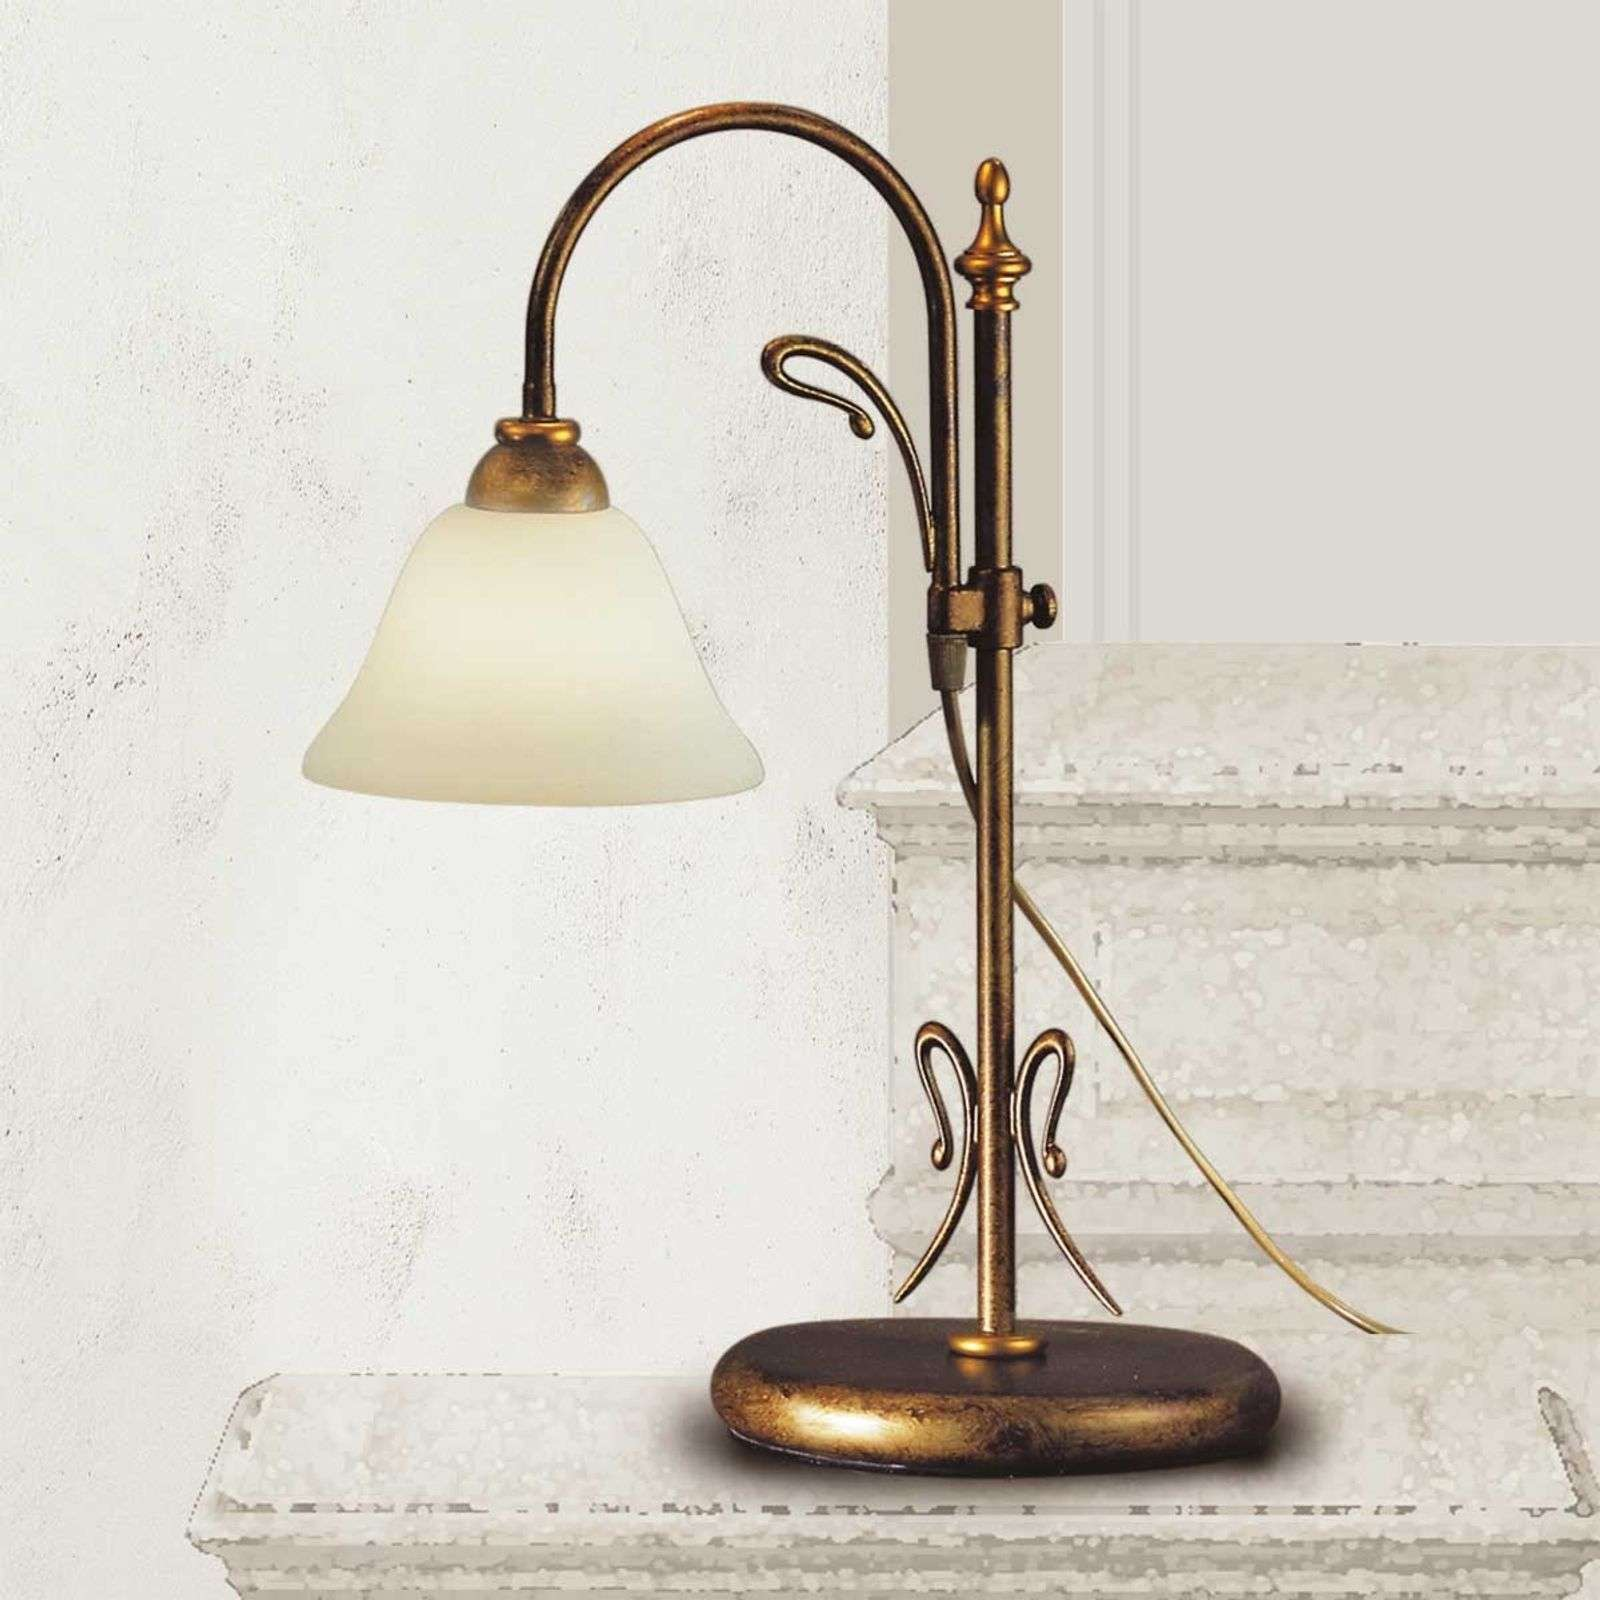 Lampe à poser antique Antonio